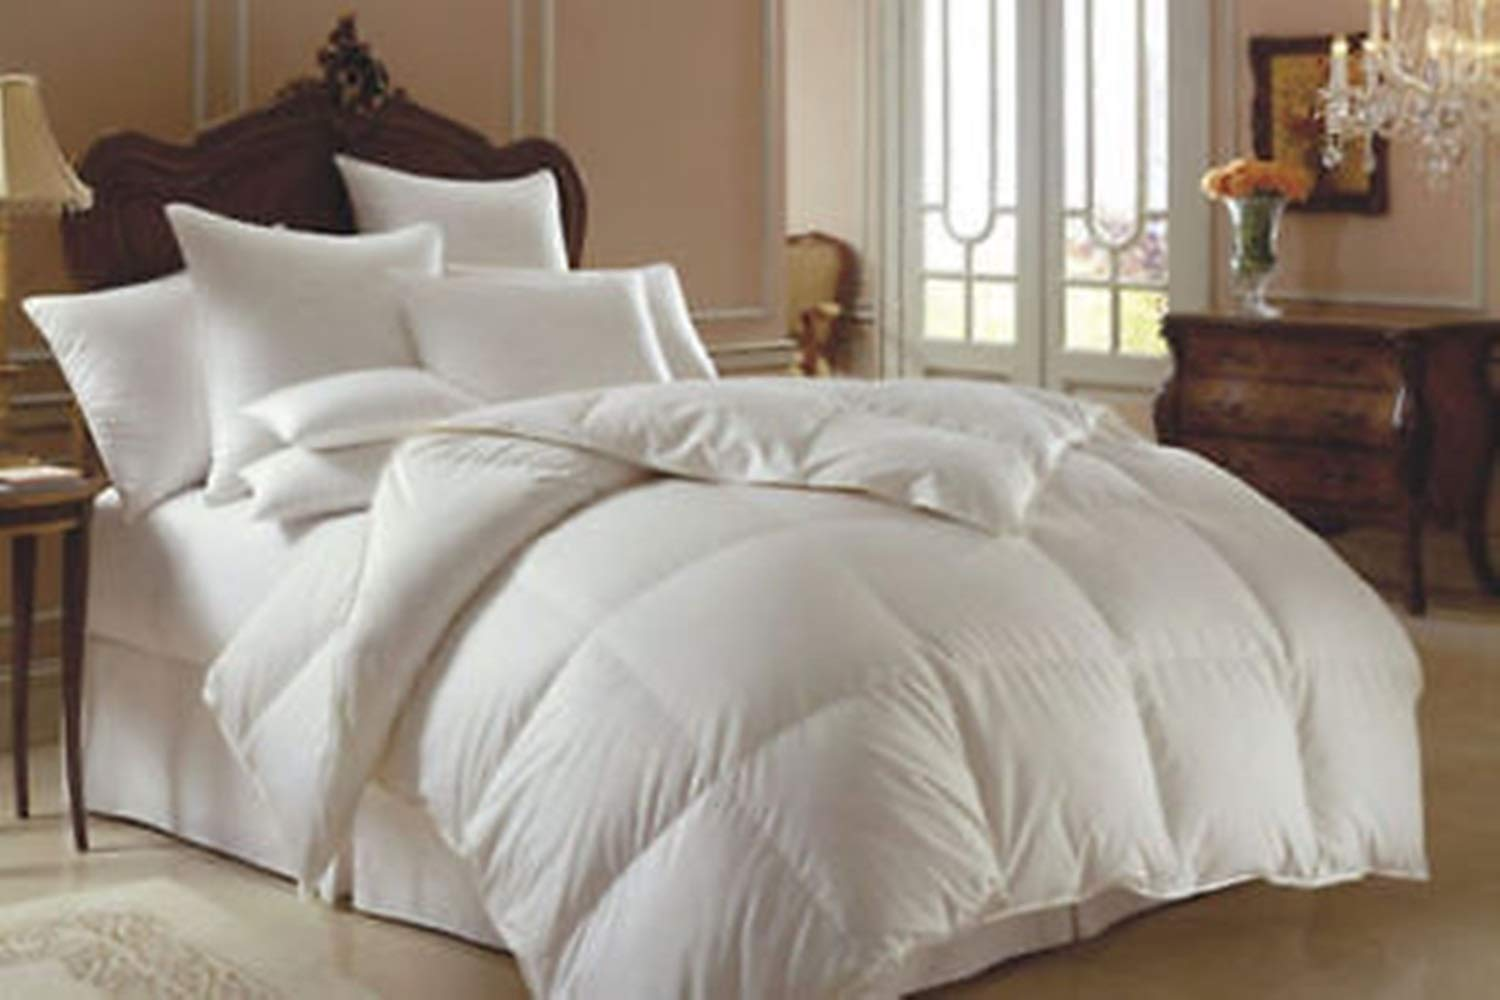 NEW LUXURY HOTEL QUALITY DUCK FEATHER /& DOWN DUVET MACHINE WASHABLE 10.5 TOG